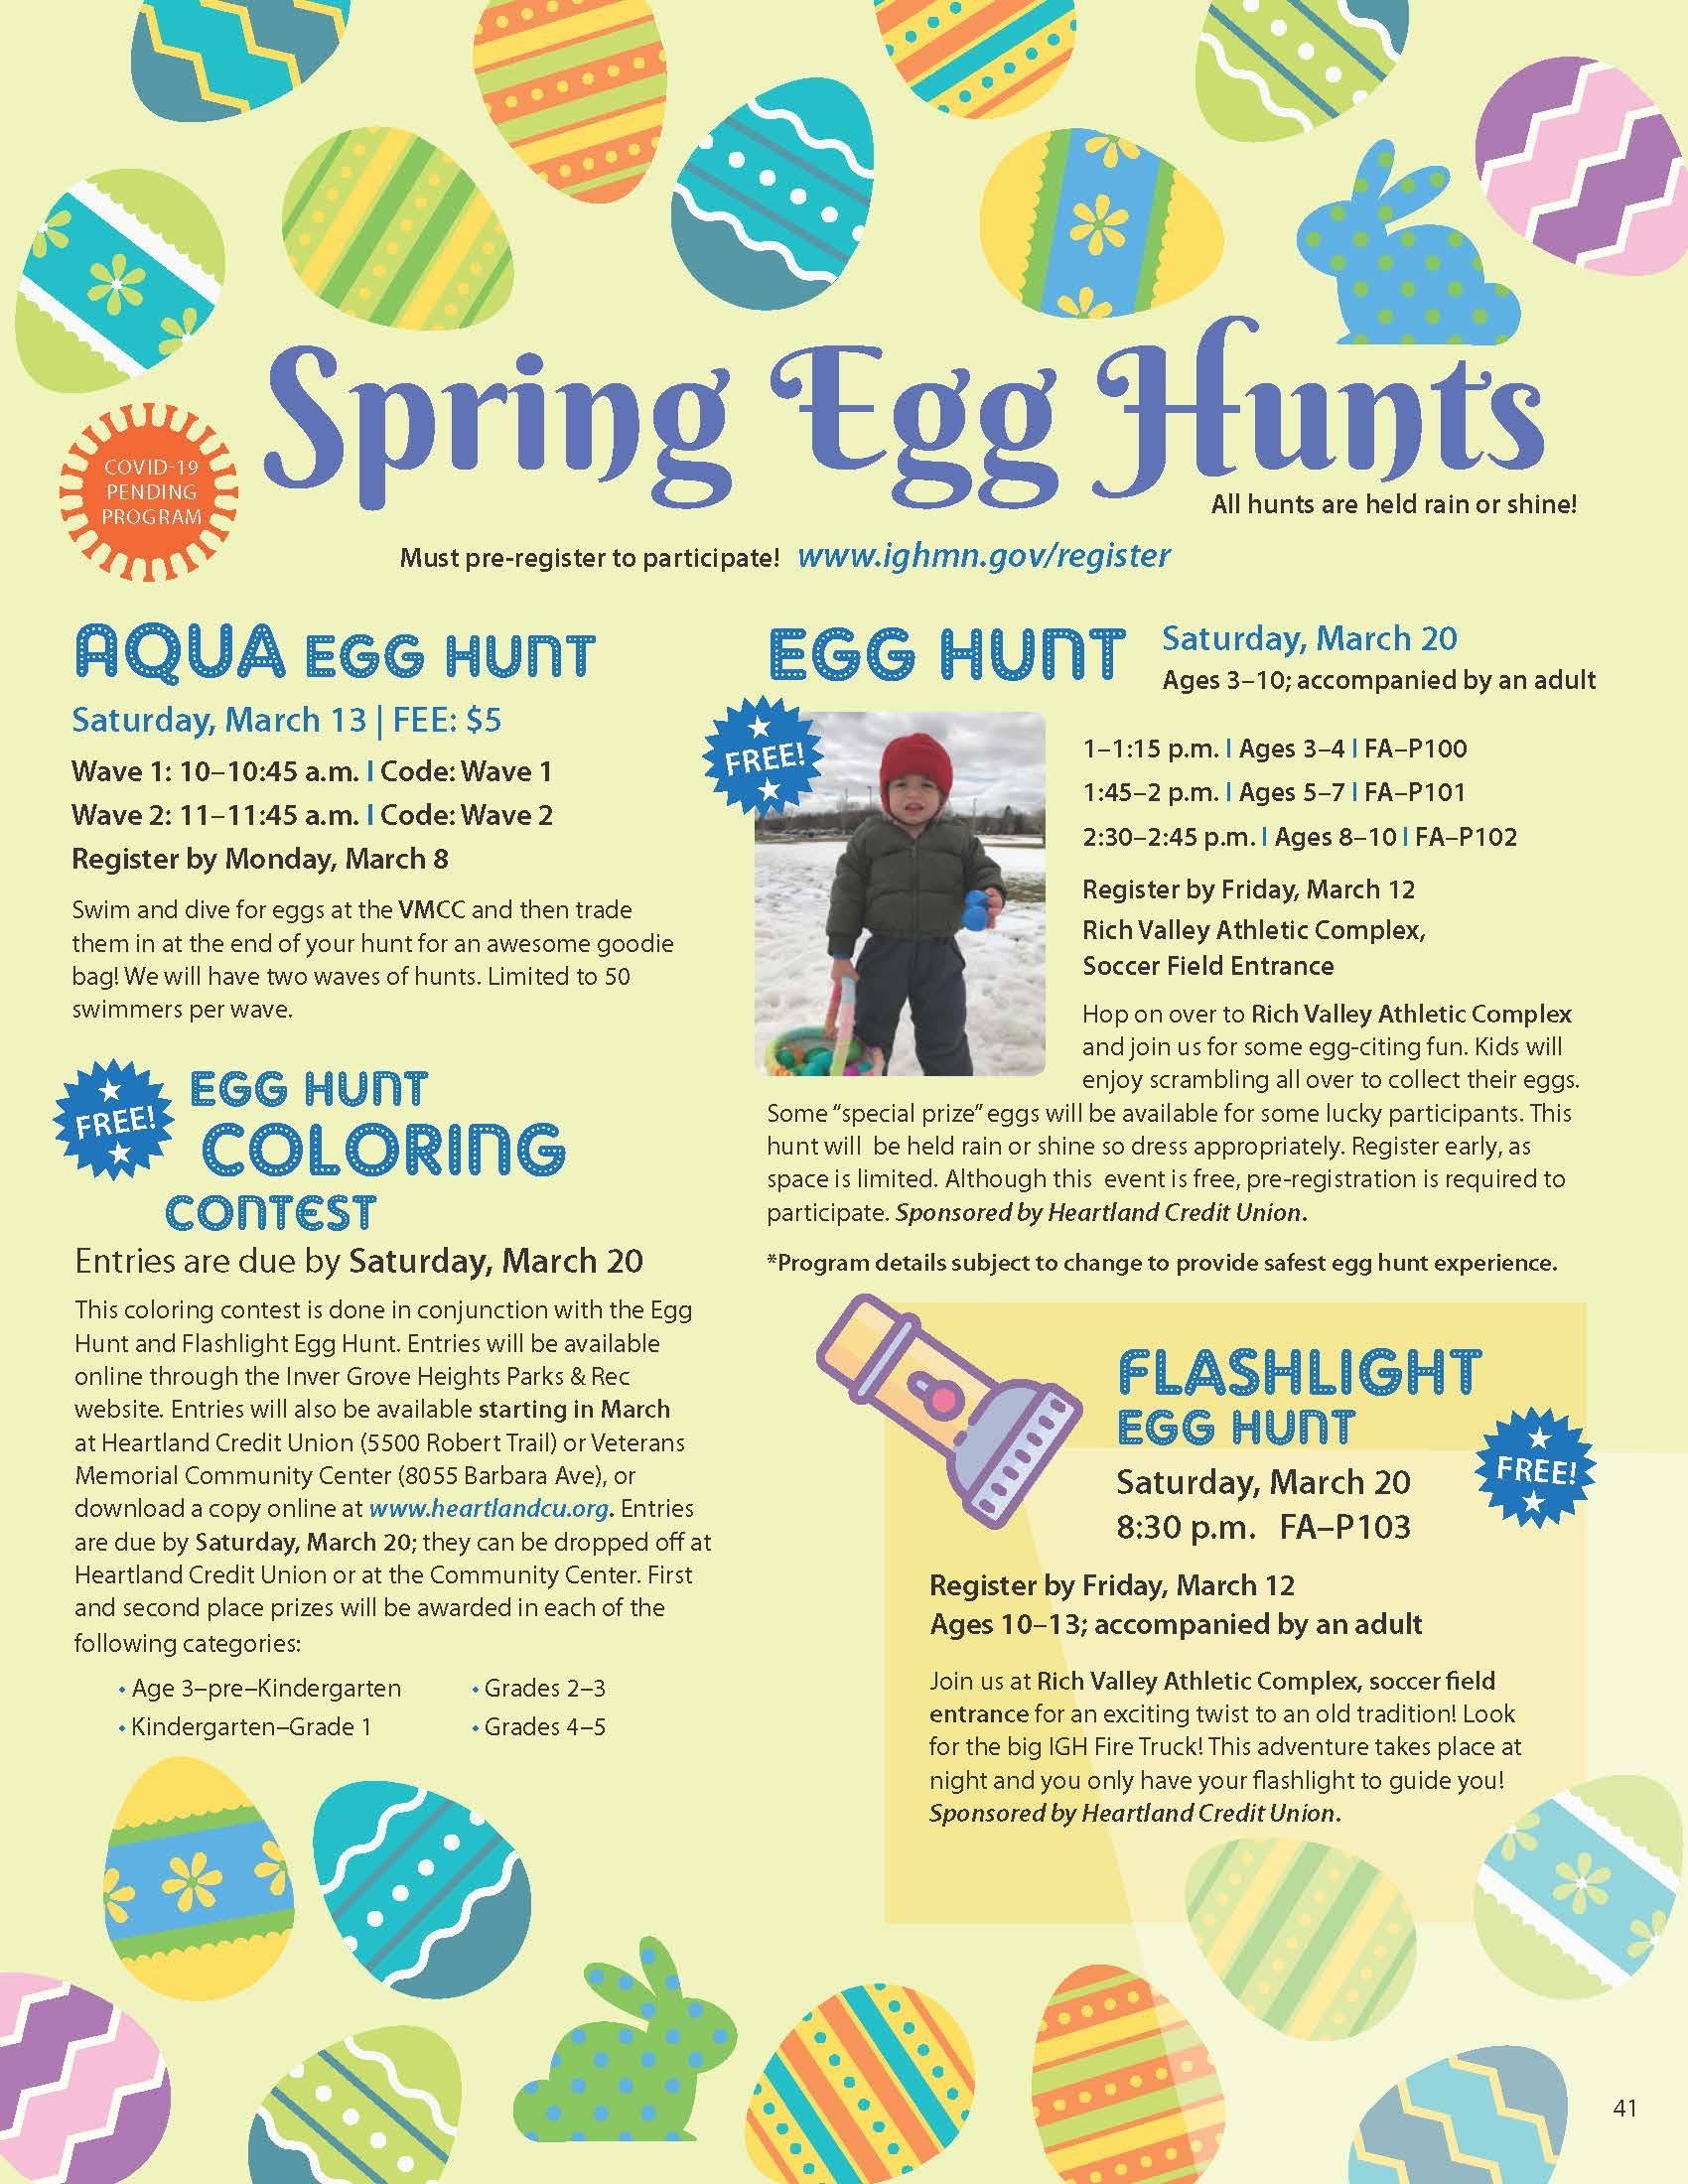 IGH-Winter-Spring2021 EGG HUNTS page Opens in new window